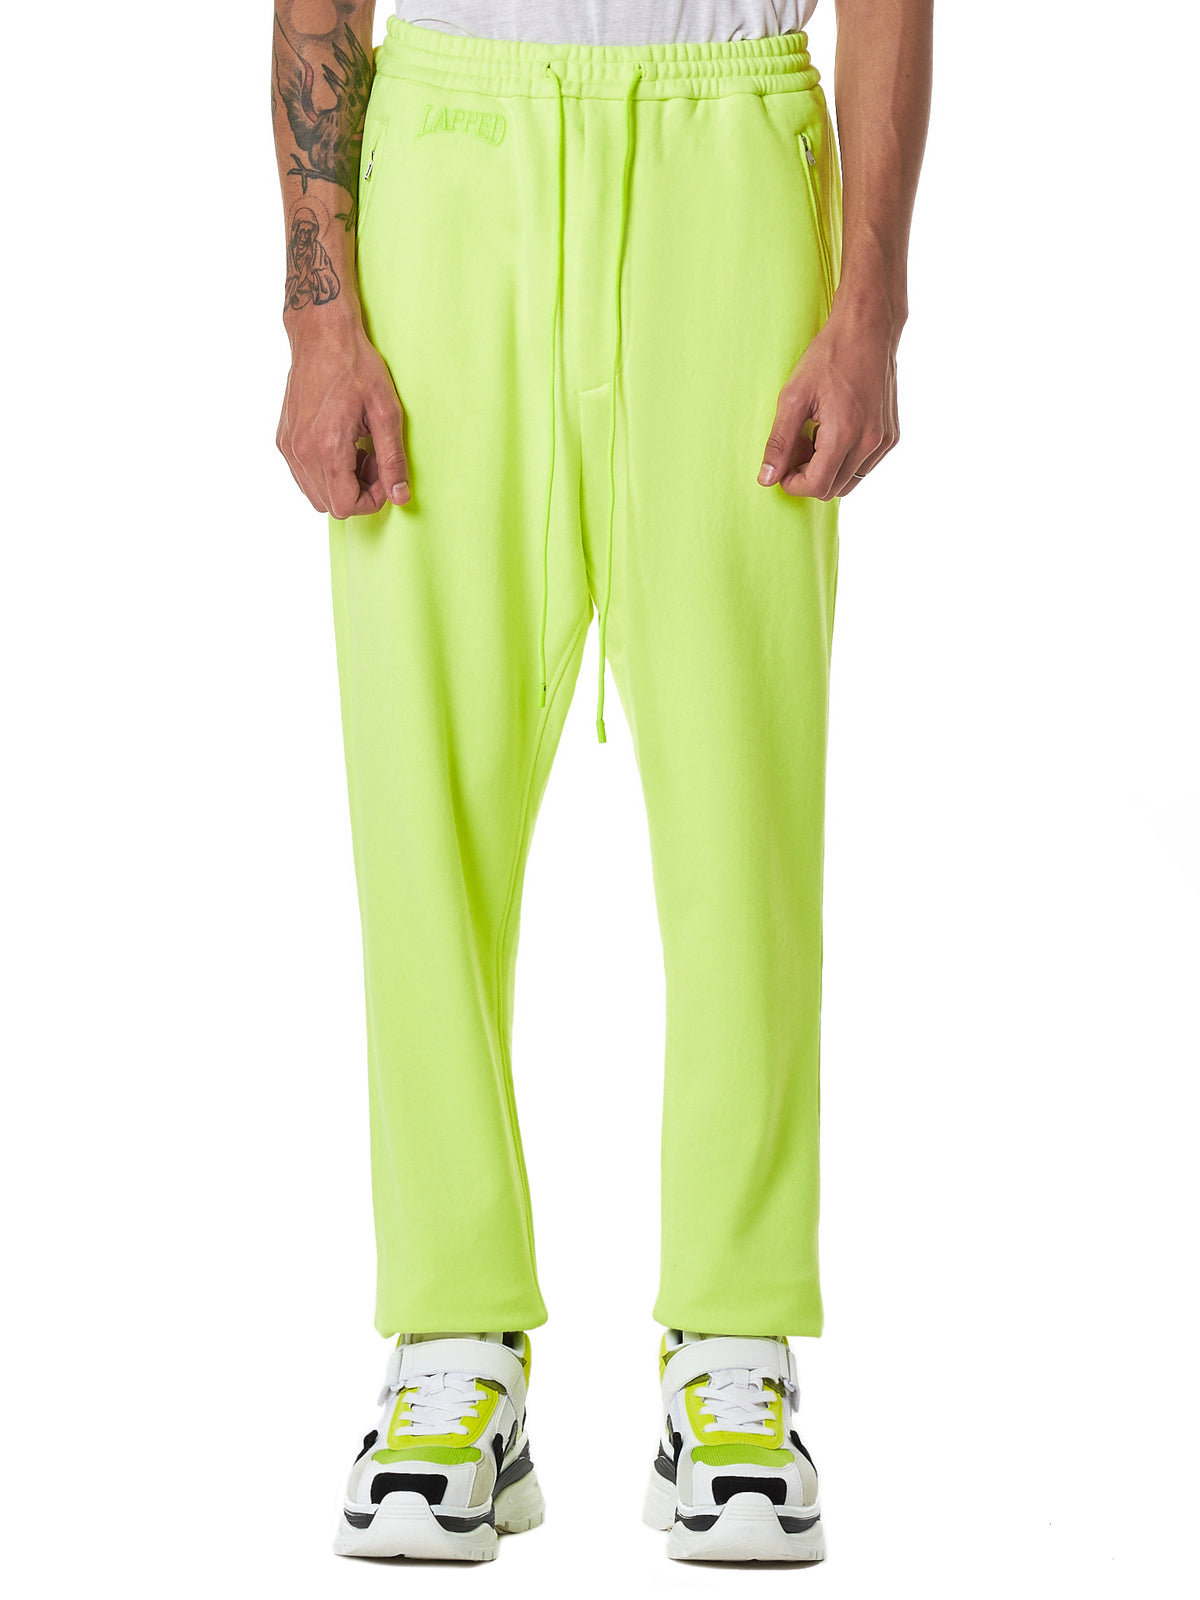 Juun.J Yellow Trousers - Hlorenzo Front